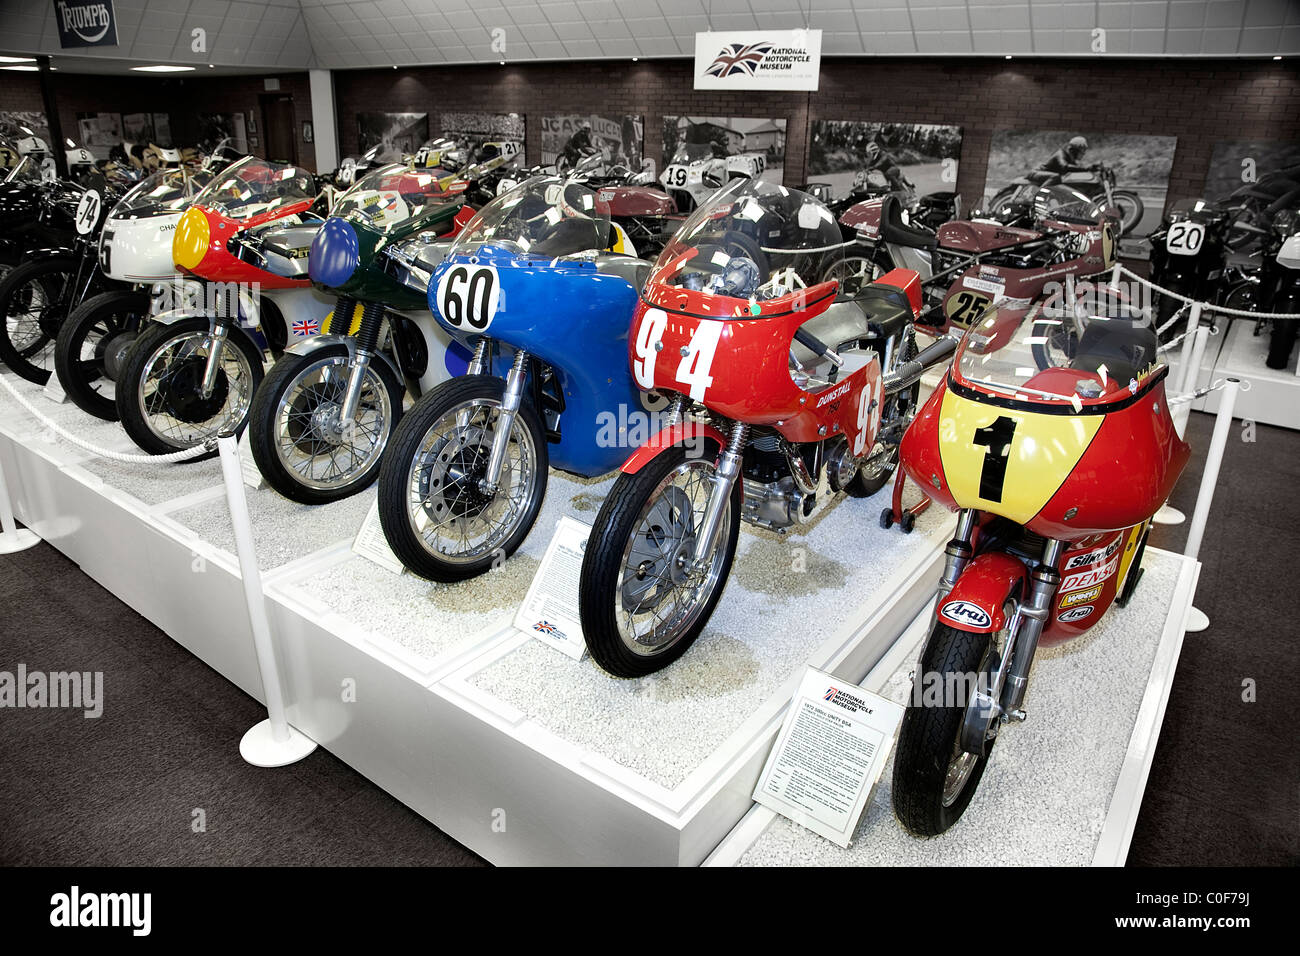 Racing Motorcycles at National Motorcycle Museum Birmingham UK - Stock Image